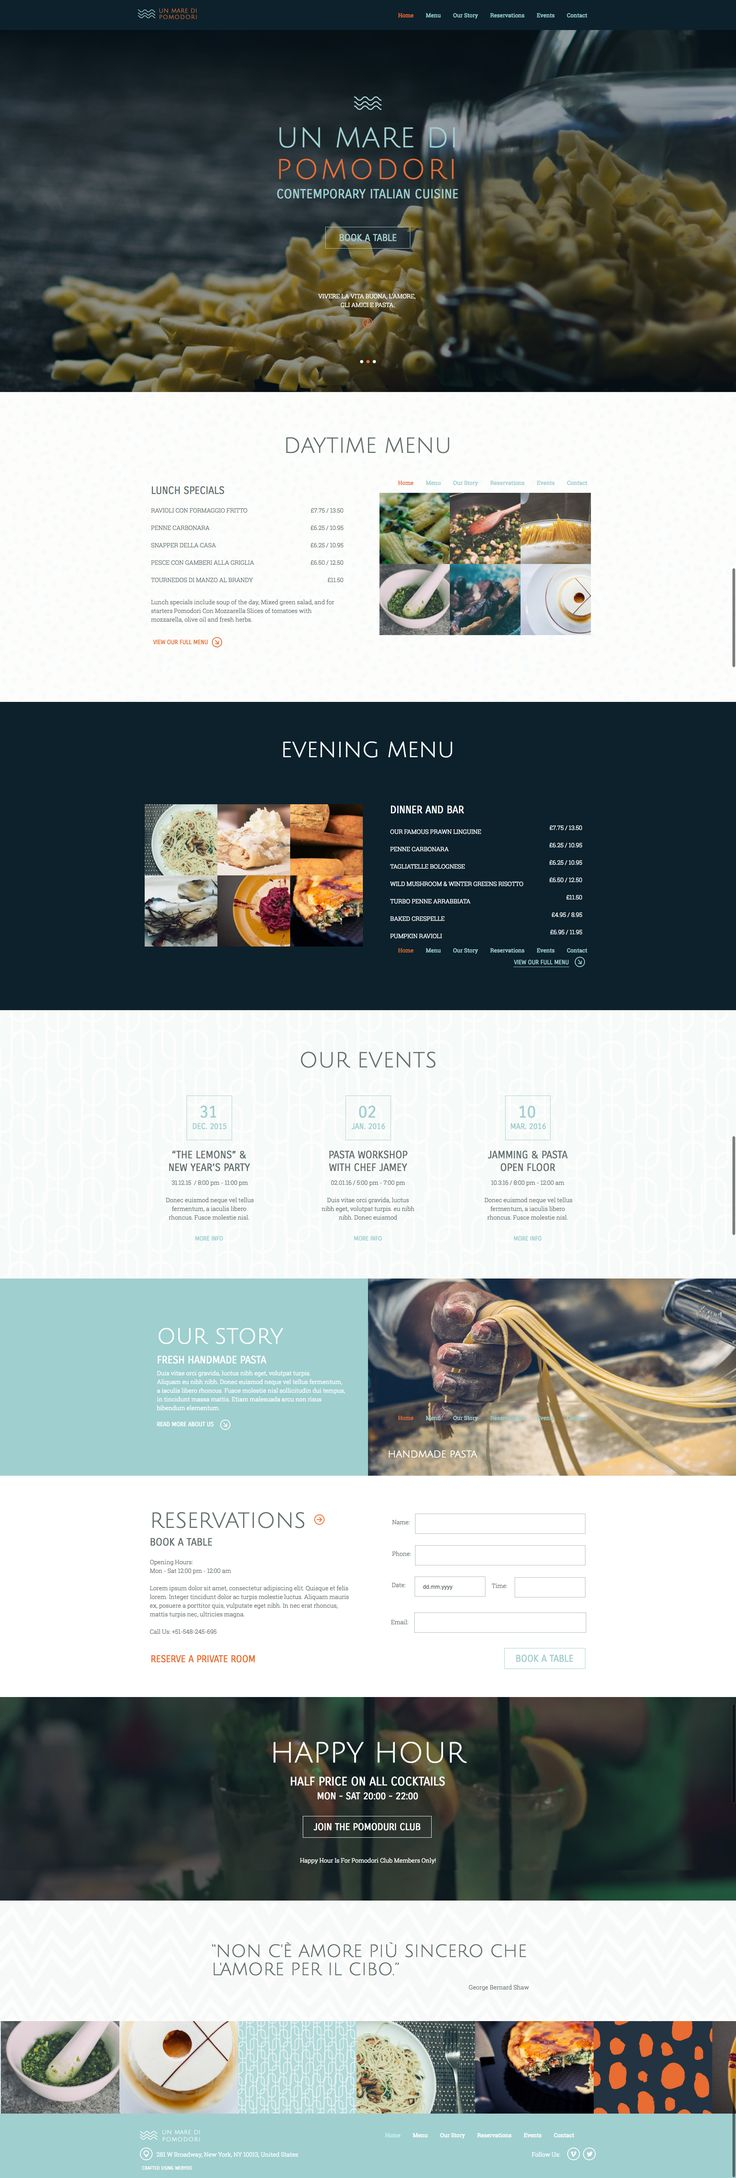 11 best website templates by webydo images on pinterest where fresh colors crisp typography and bespoke details meet form and function template freelance web pronofoot35fo Image collections